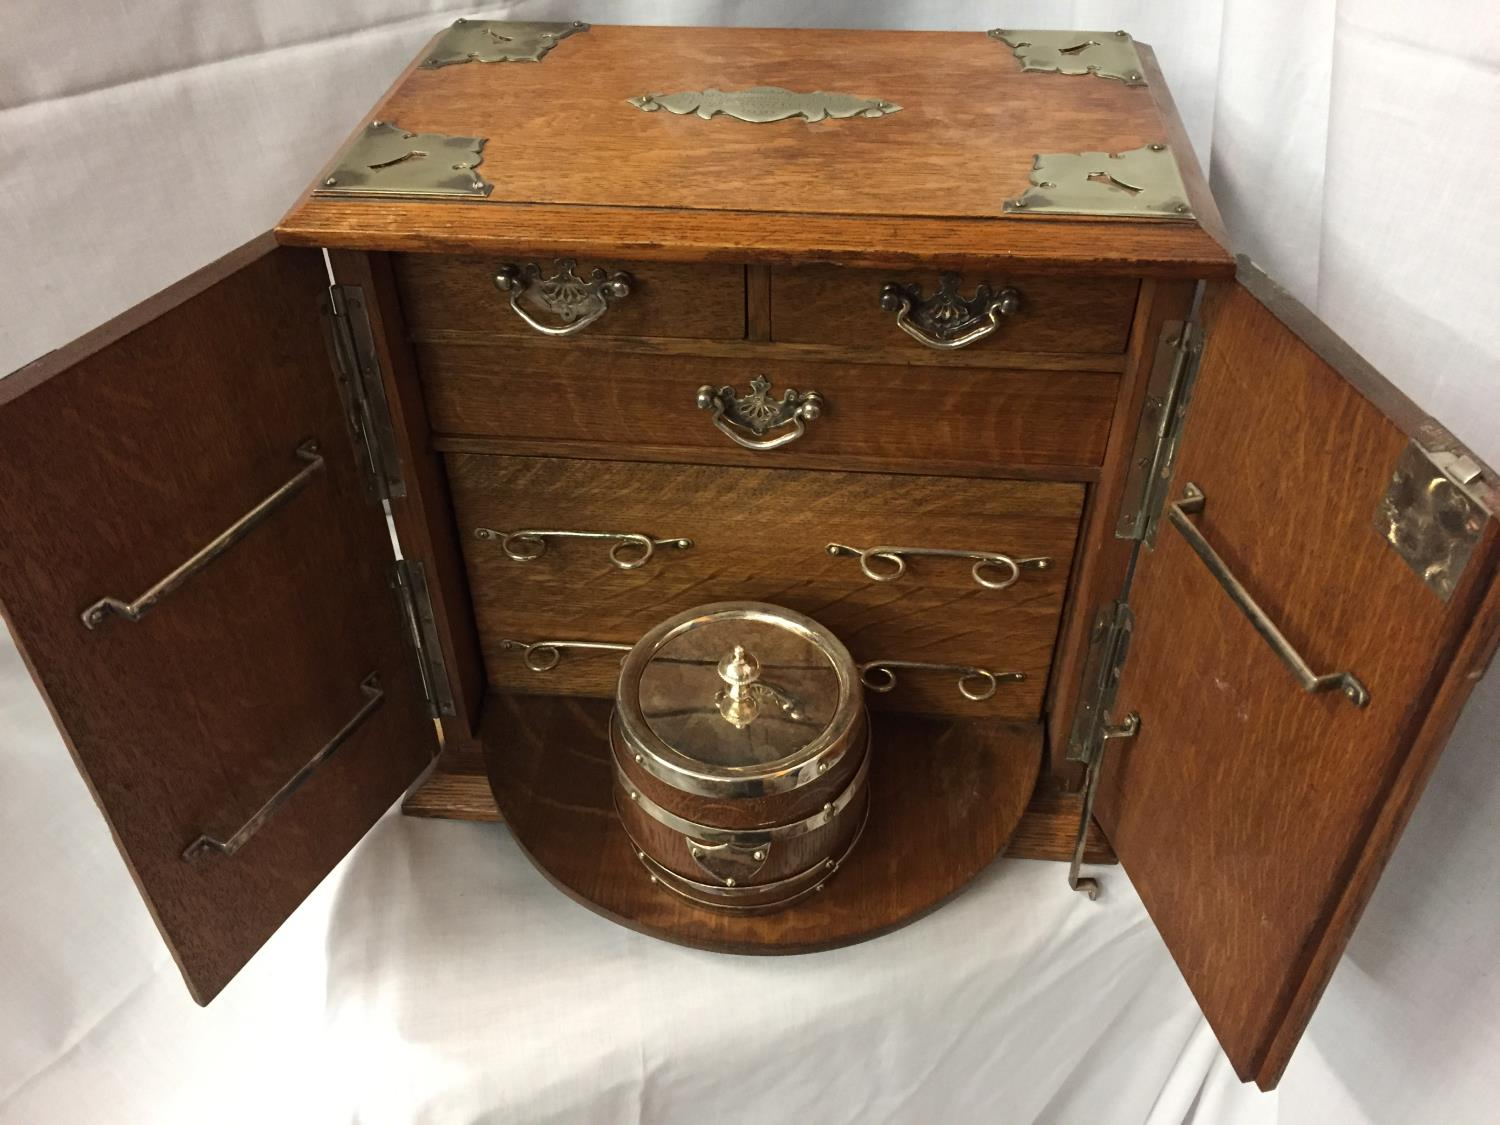 AN EDWARDIAN OAK SMOKING ROOM COMPENDIUM DATED 1921 HEIGHT 32CM - Image 2 of 4